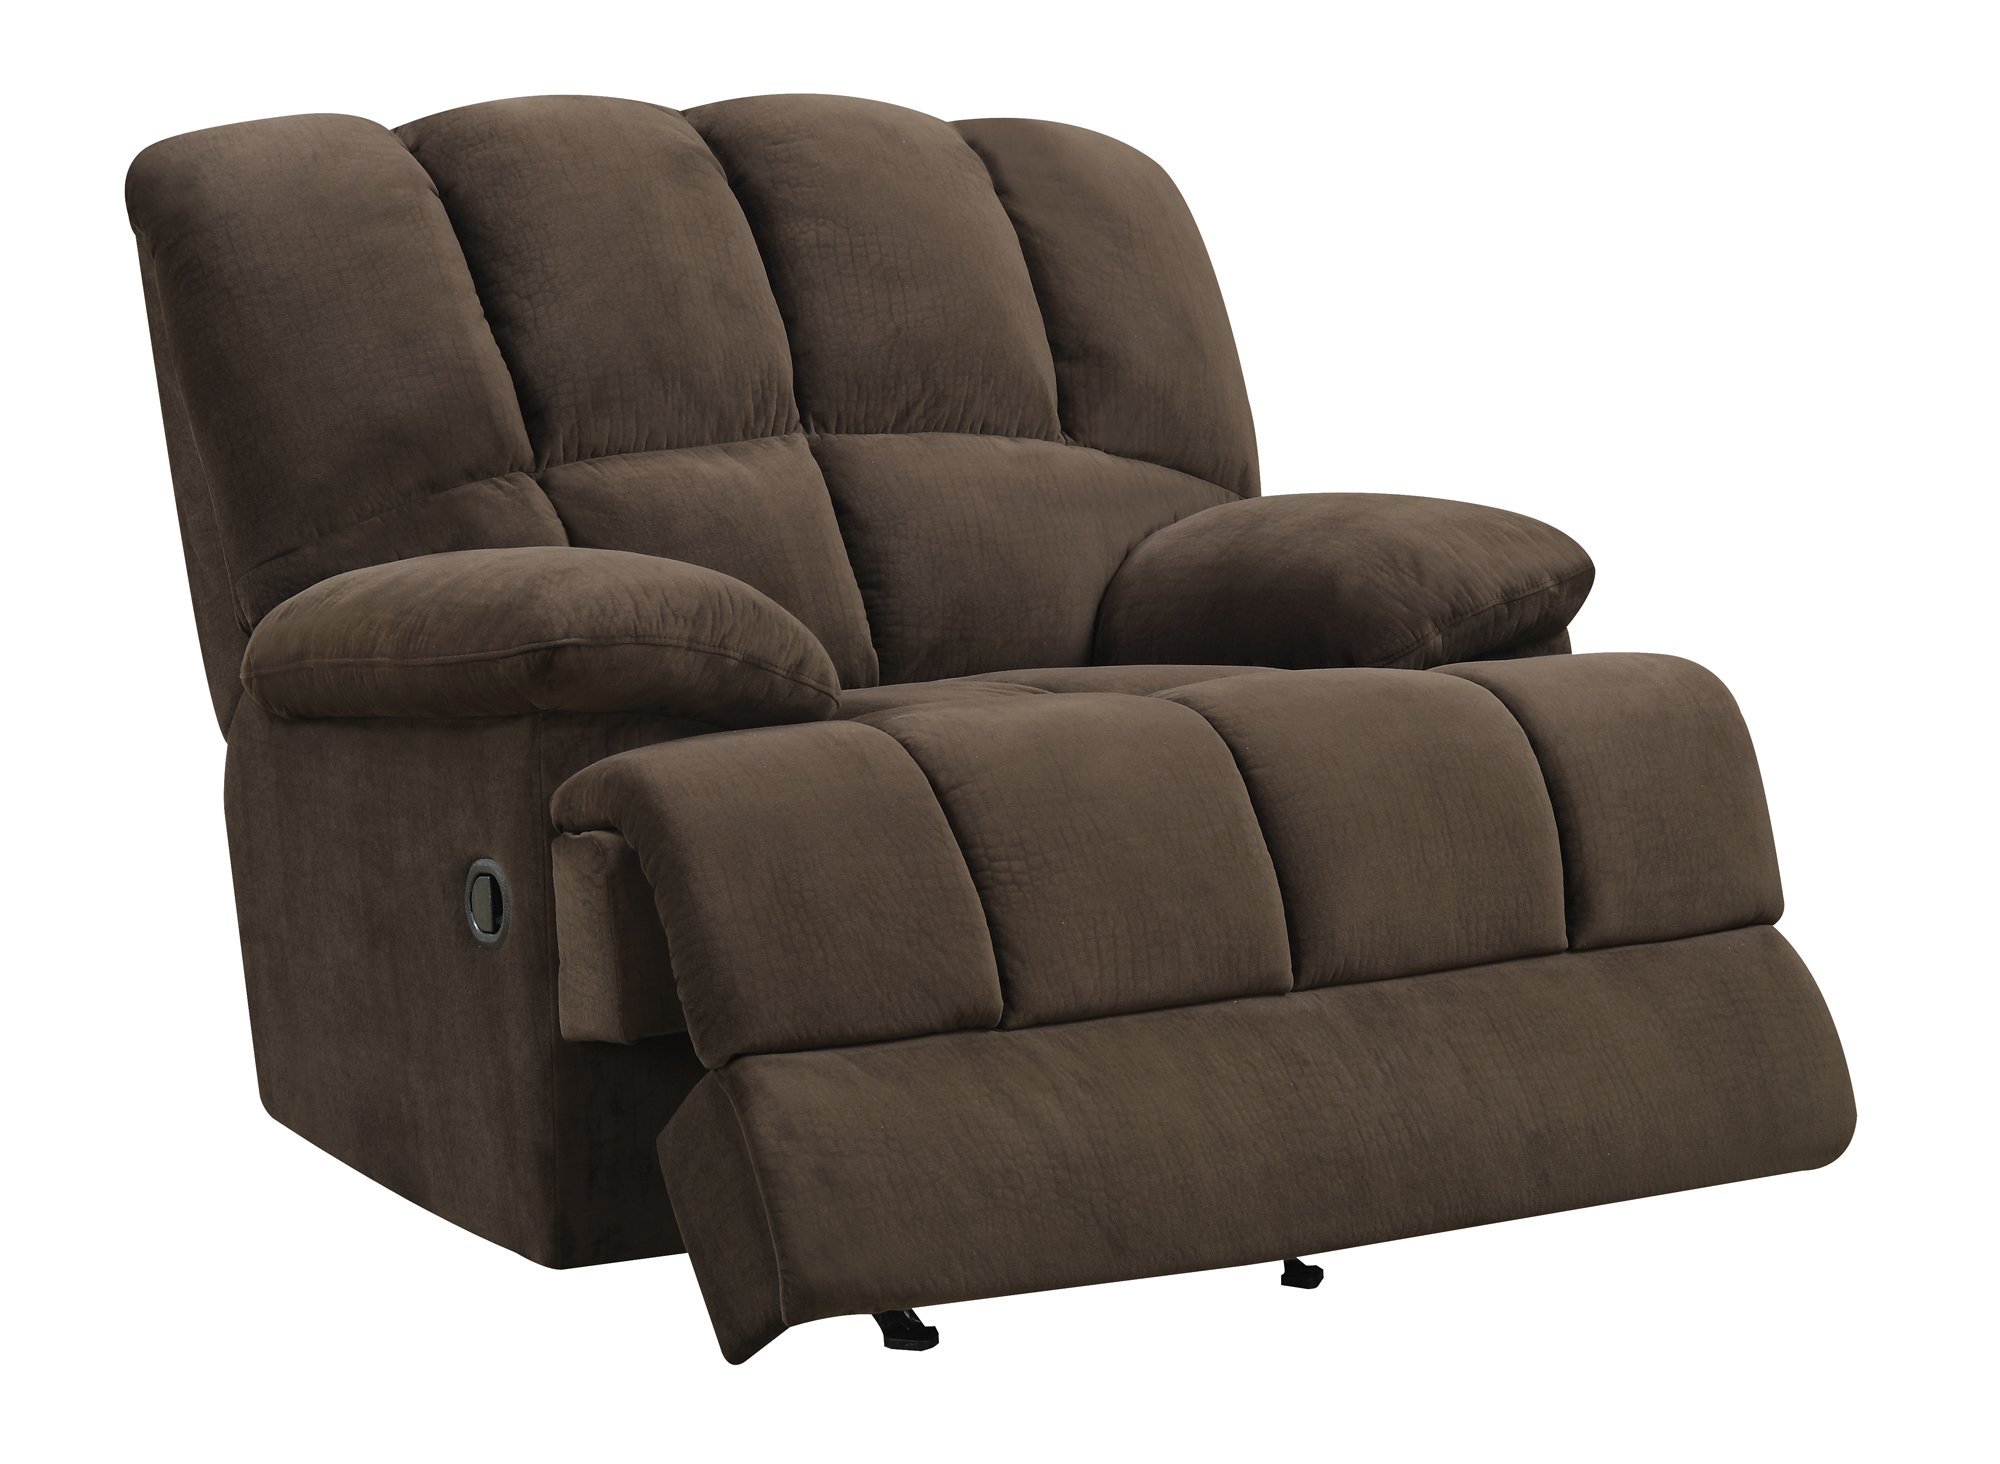 U201 Chocolate Fabric Glider Recliner Chair By Global